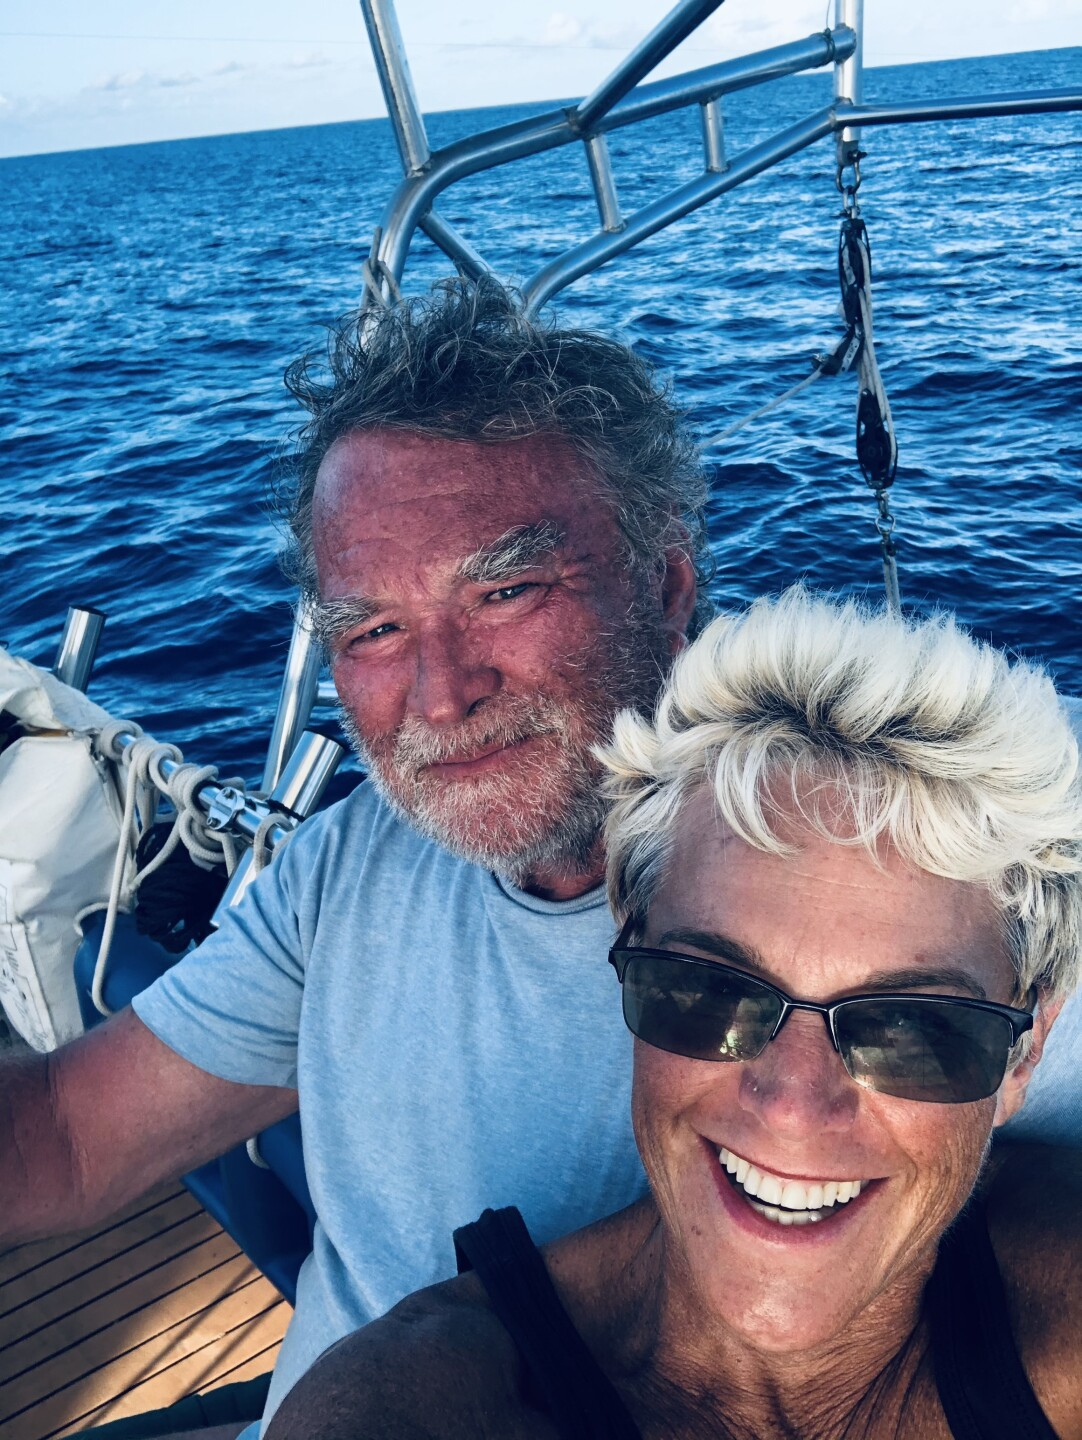 Marty Widrick and Sven Karrlson smiling at sea